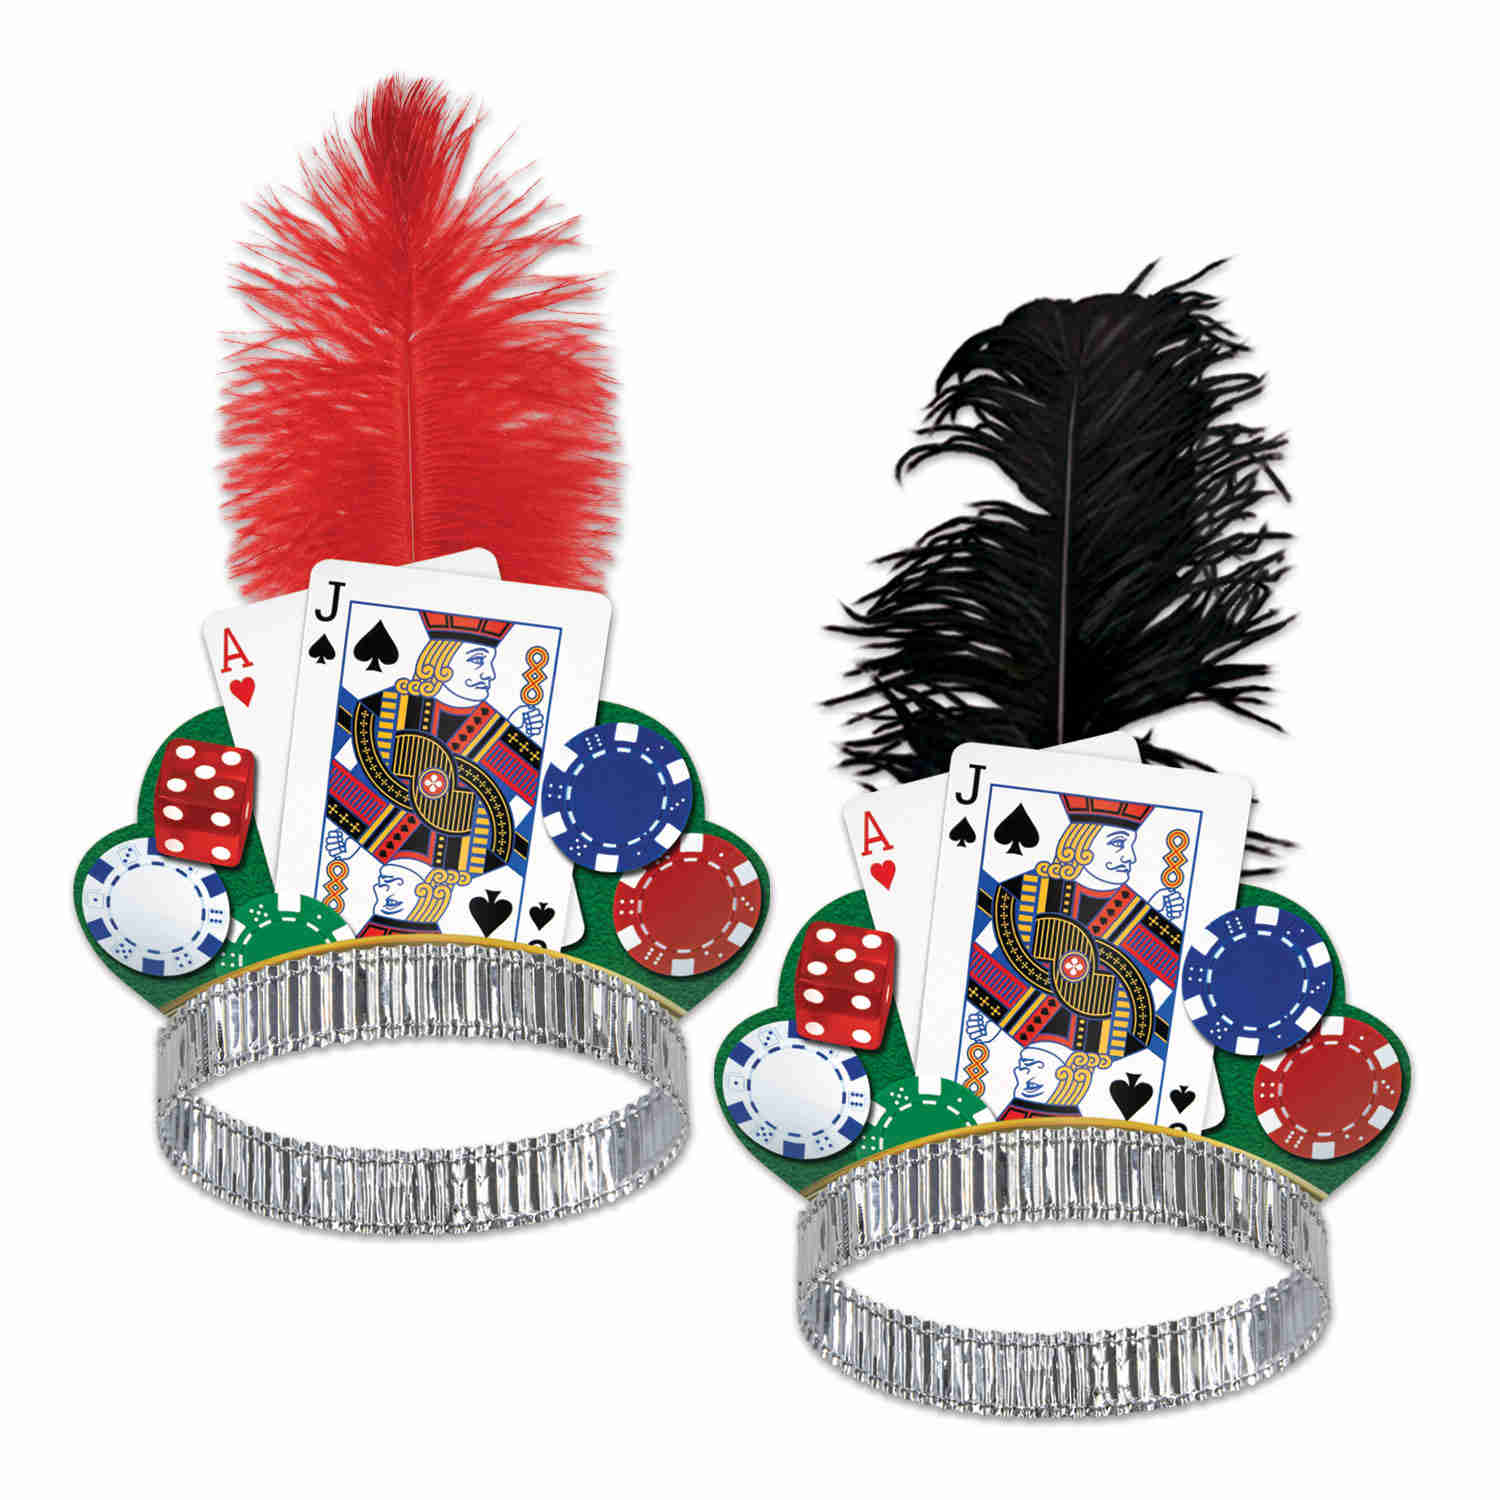 Casino Night Party Supplies and Decorations